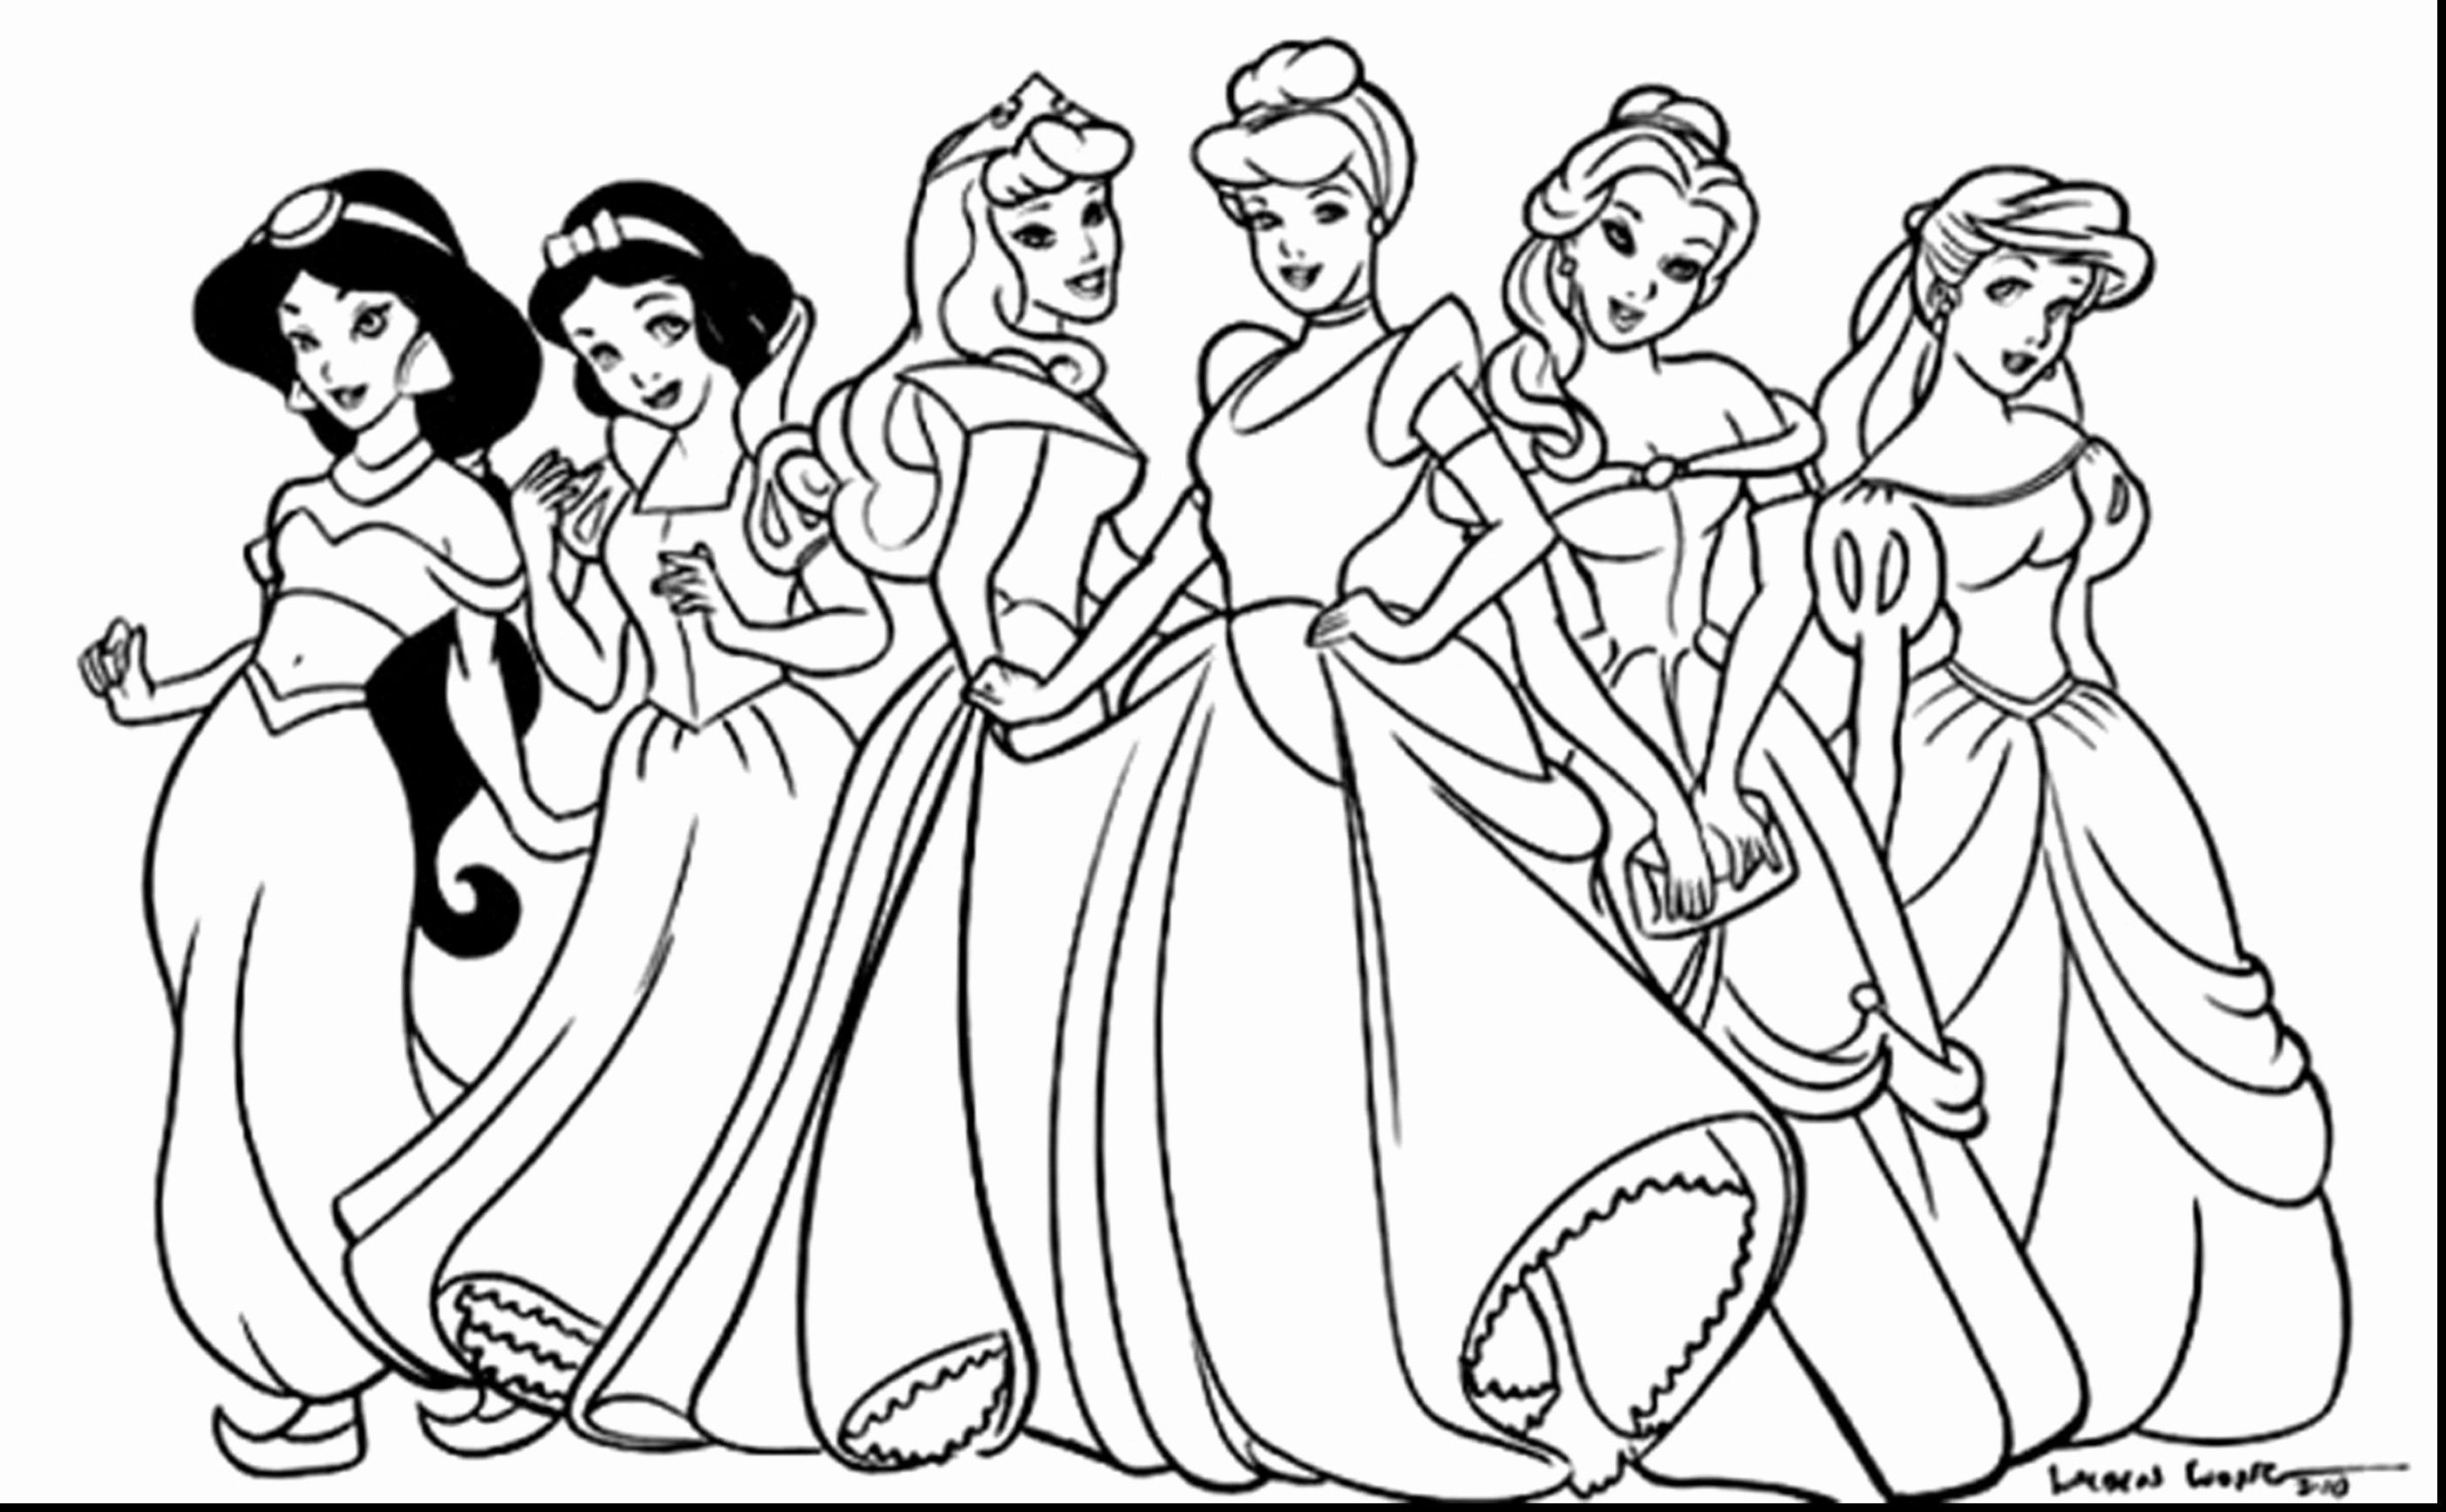 Princess colouring page pdf u through the thousand pictures on the